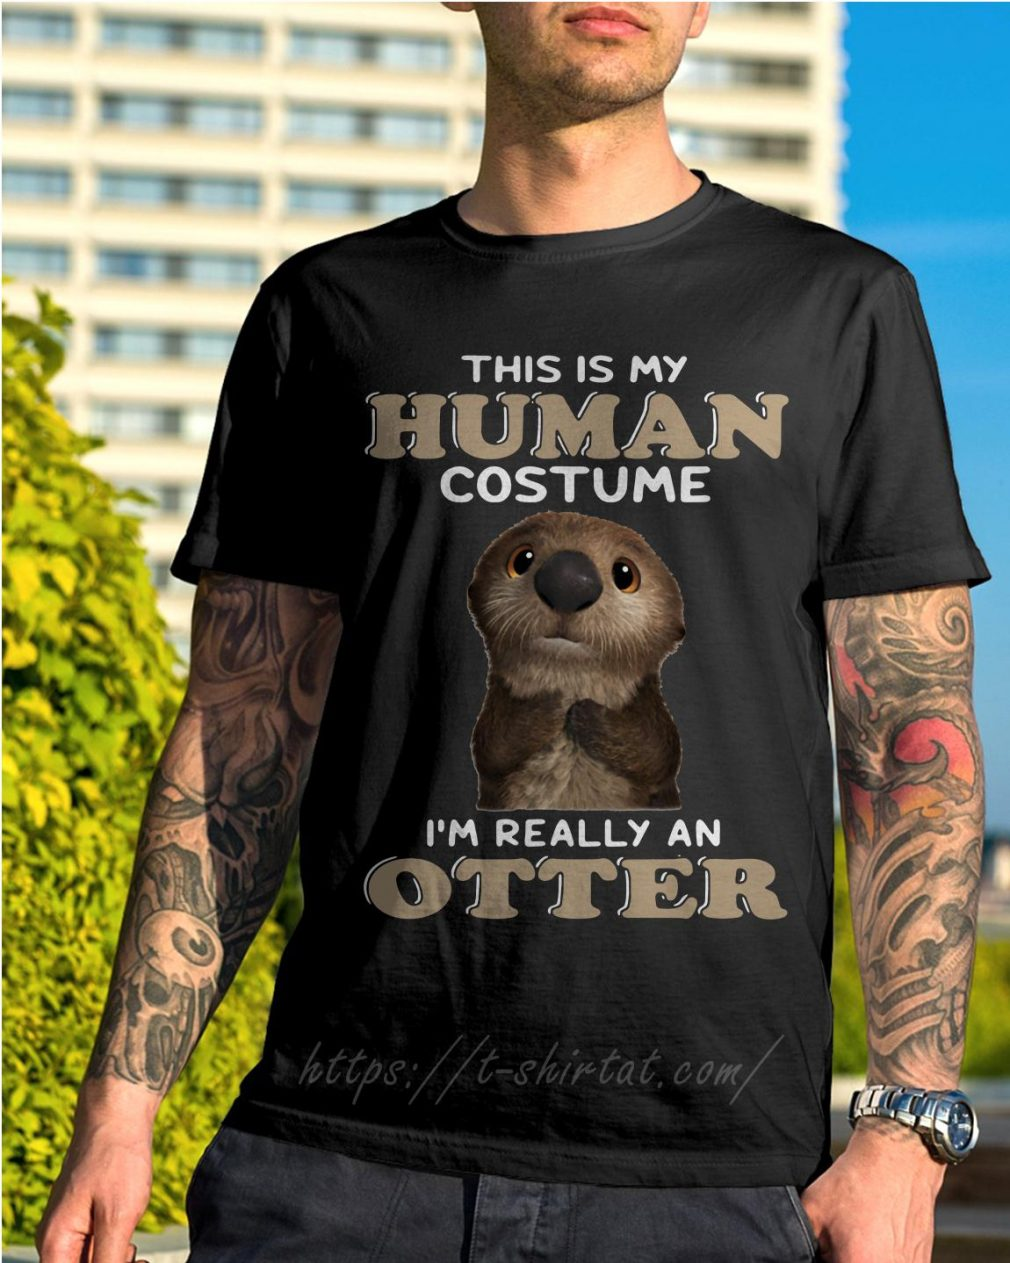 This is my human costume I'm really an Otter shirt